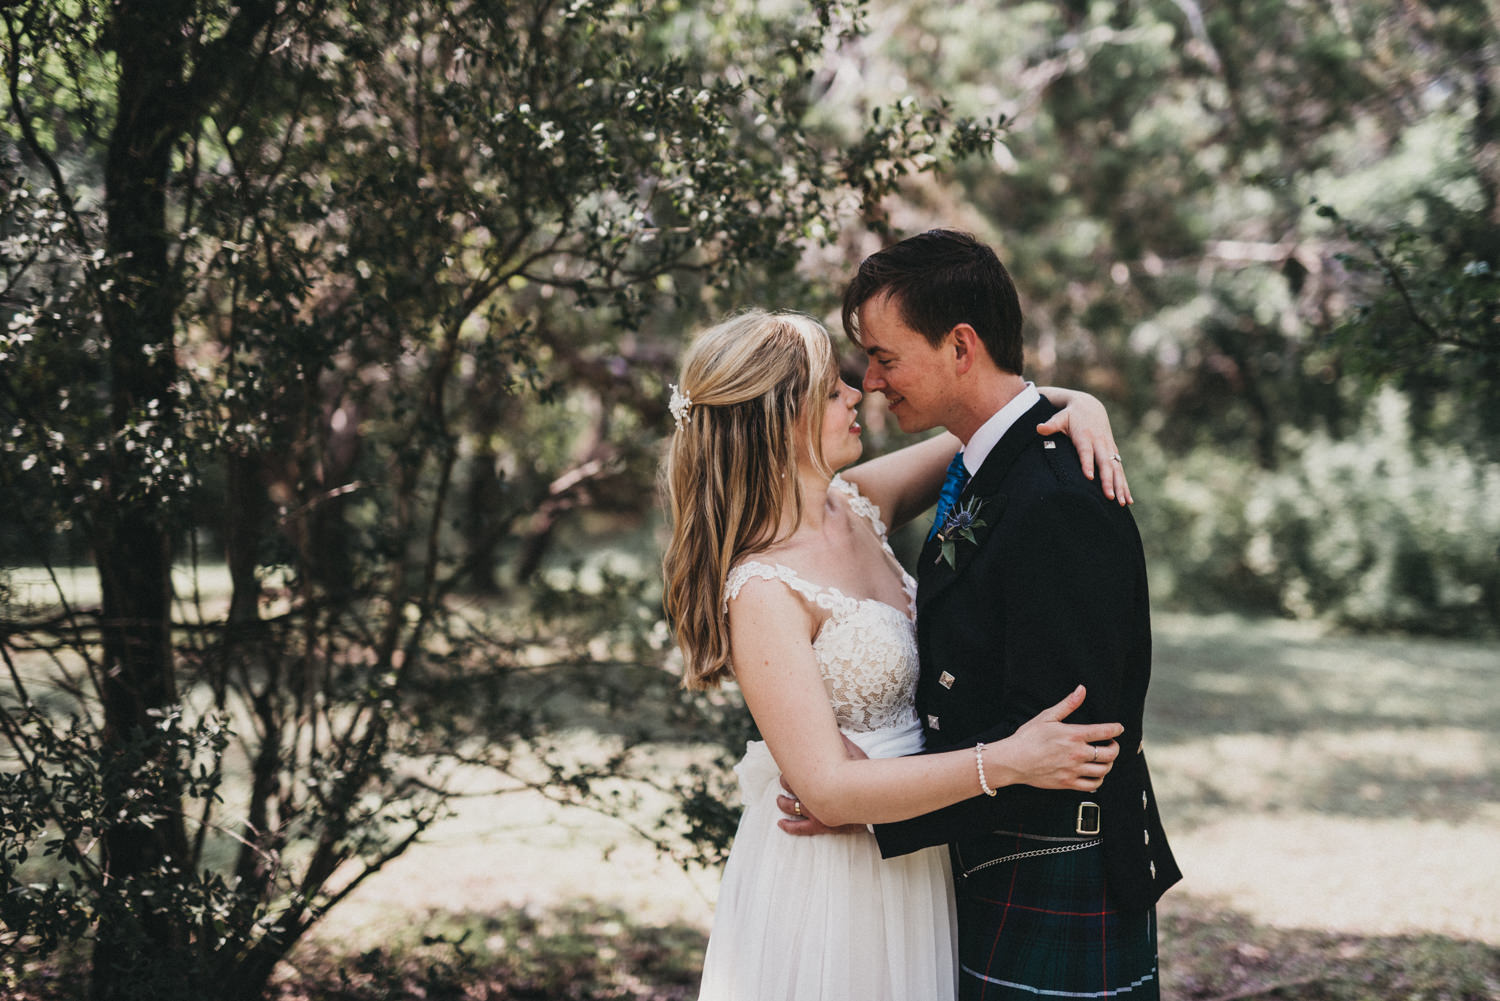 A Scottish wedding in Austin